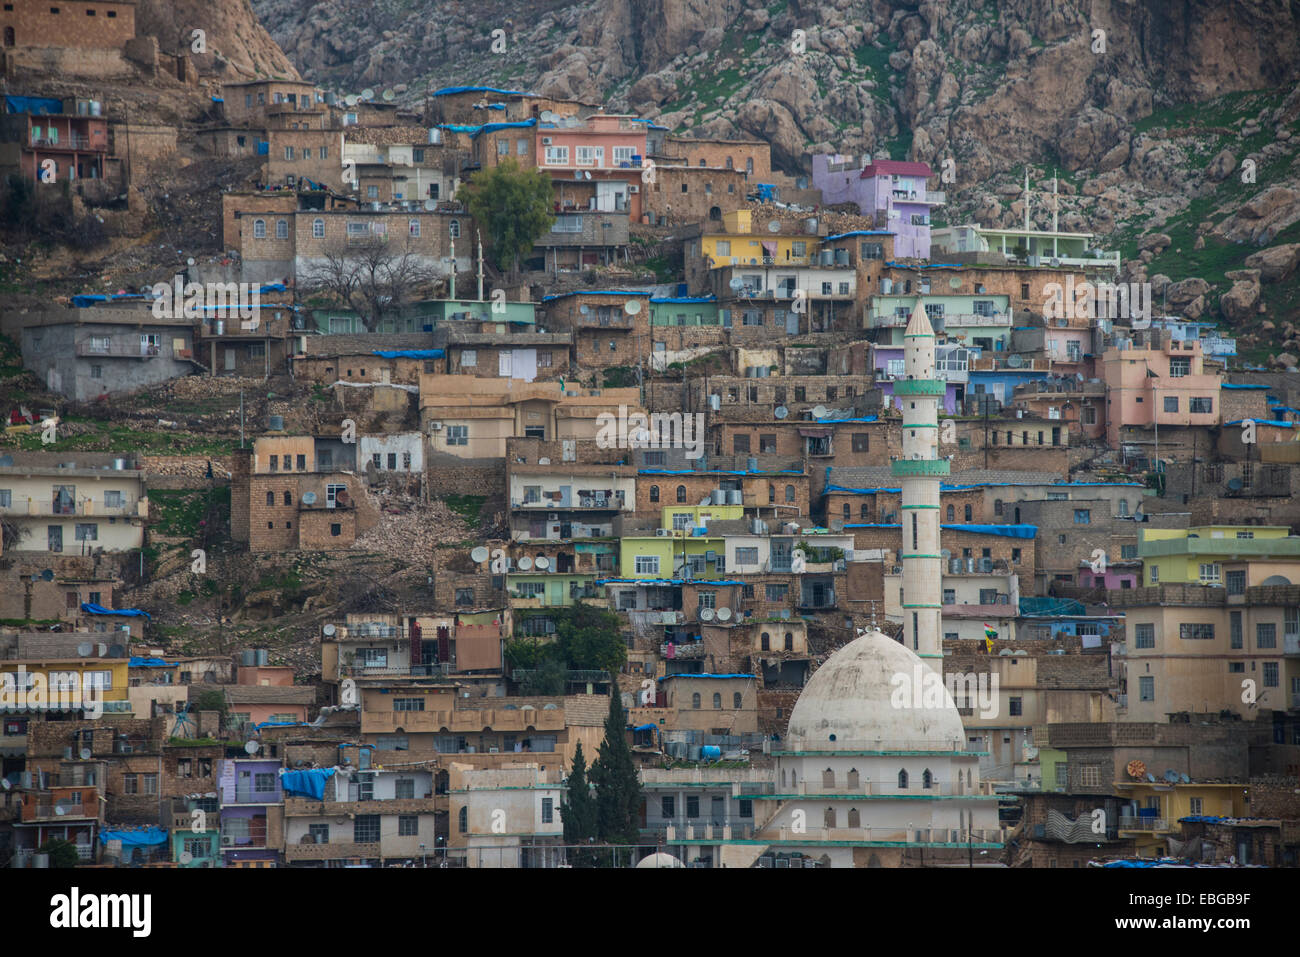 Ancient town of Aqrah, Aqrah, Iraqi Kurdistan, Iraq - Stock Image